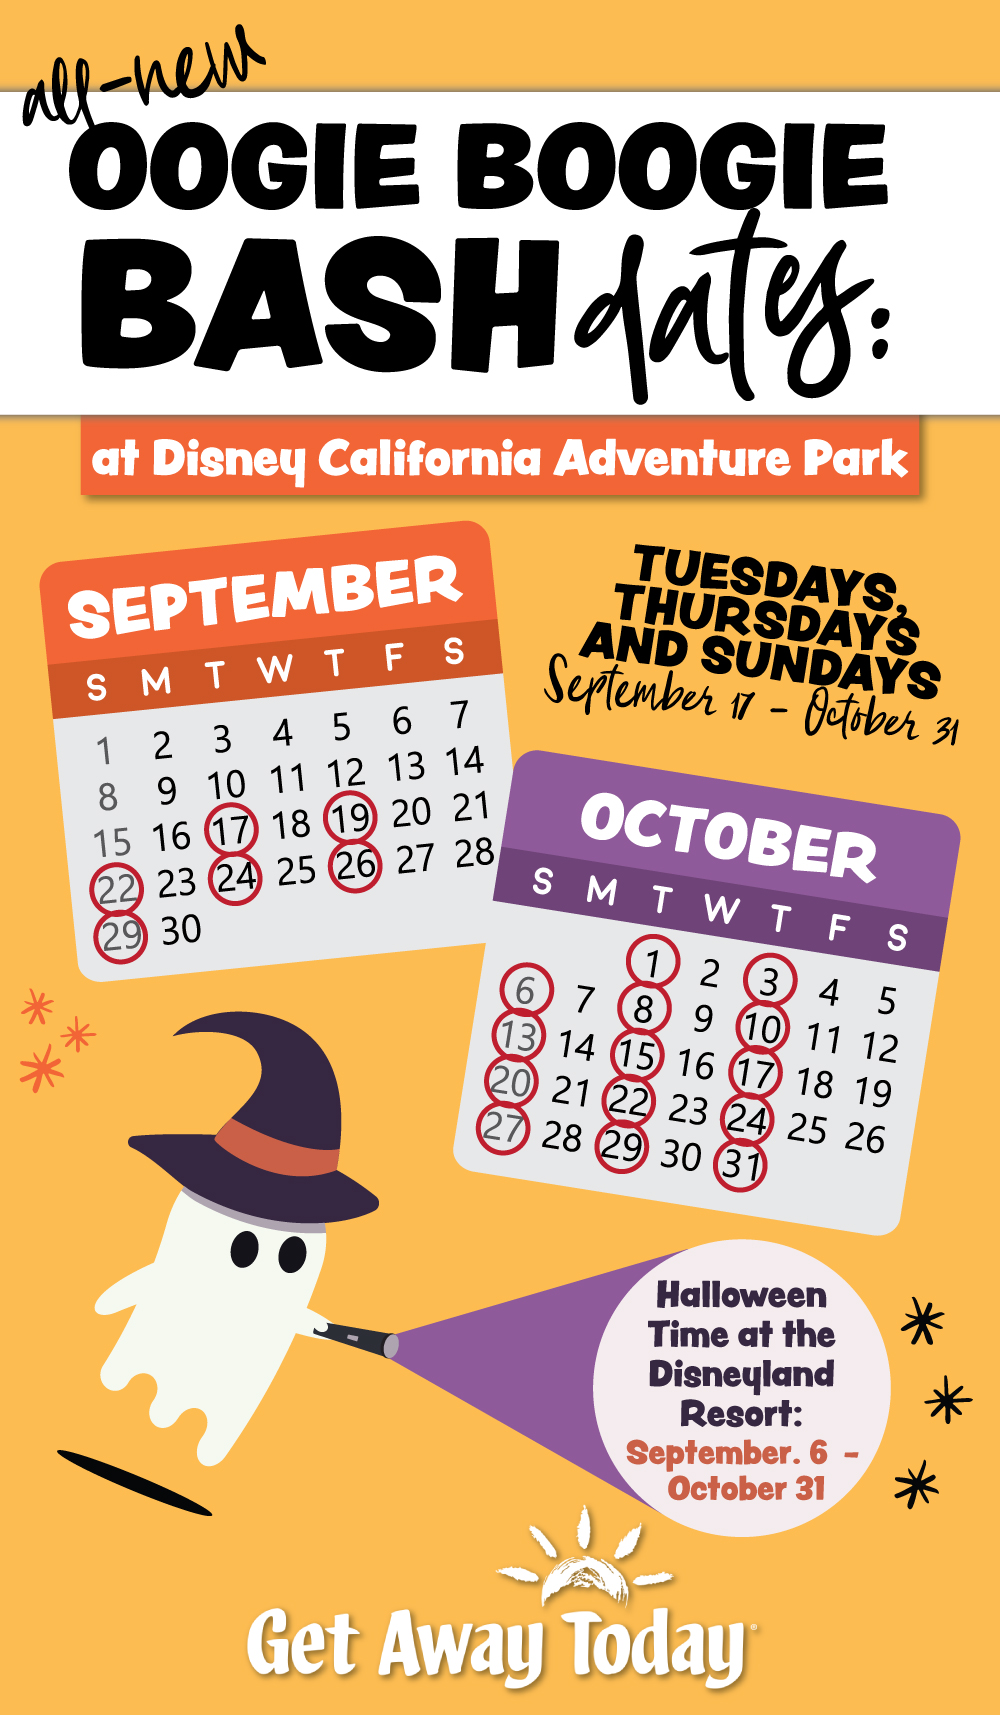 Oogie Boogie Bash Dates- Disneyland Halloween Party || Get Away Today